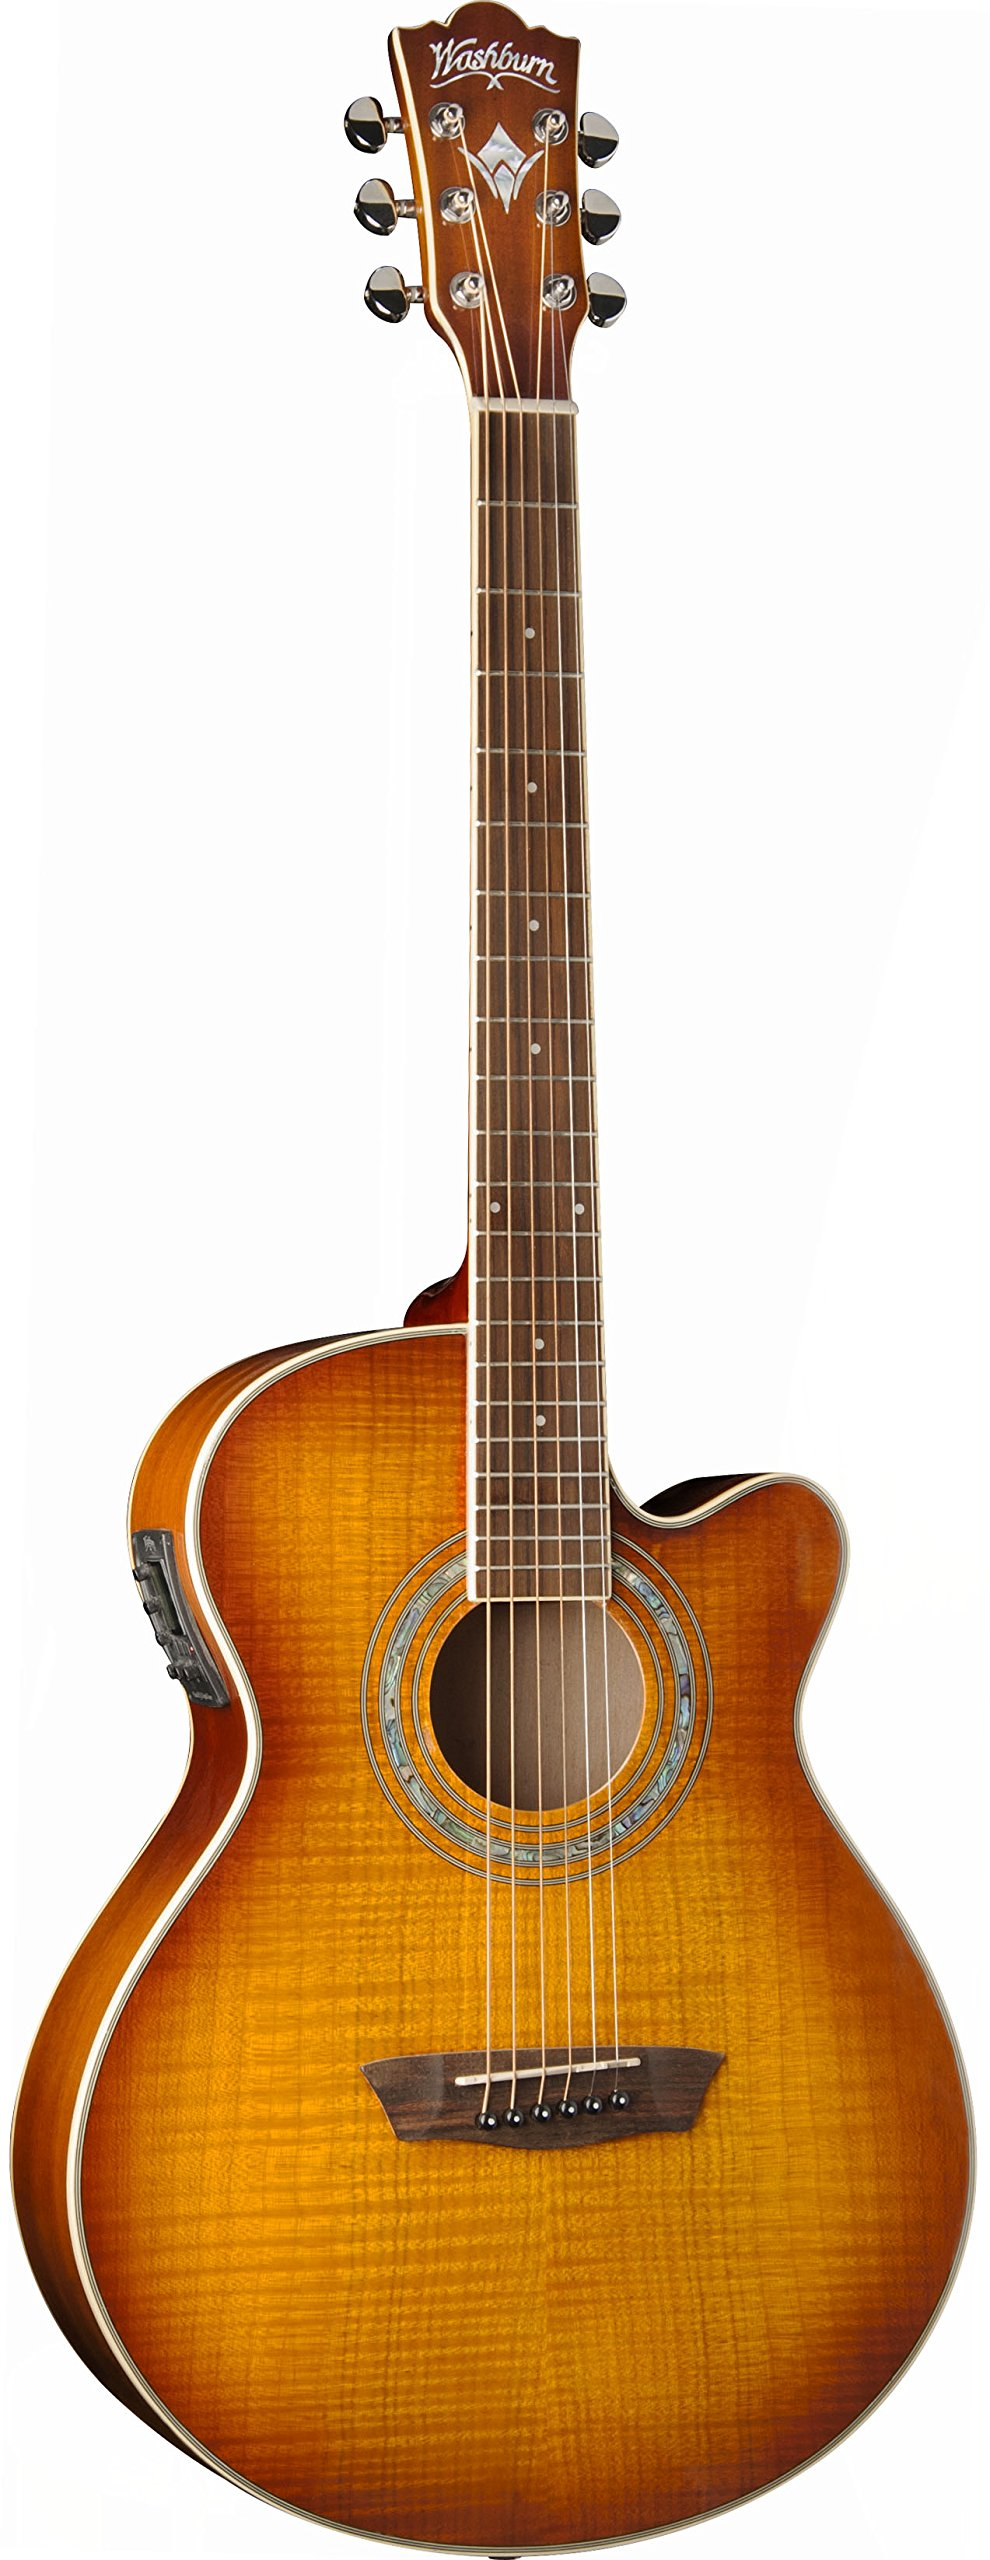 Washburn EA15ITB Festival Series Mini Jumbo Acoustic-Electric Guitar, Ice Tea Burst Finish by Washburn